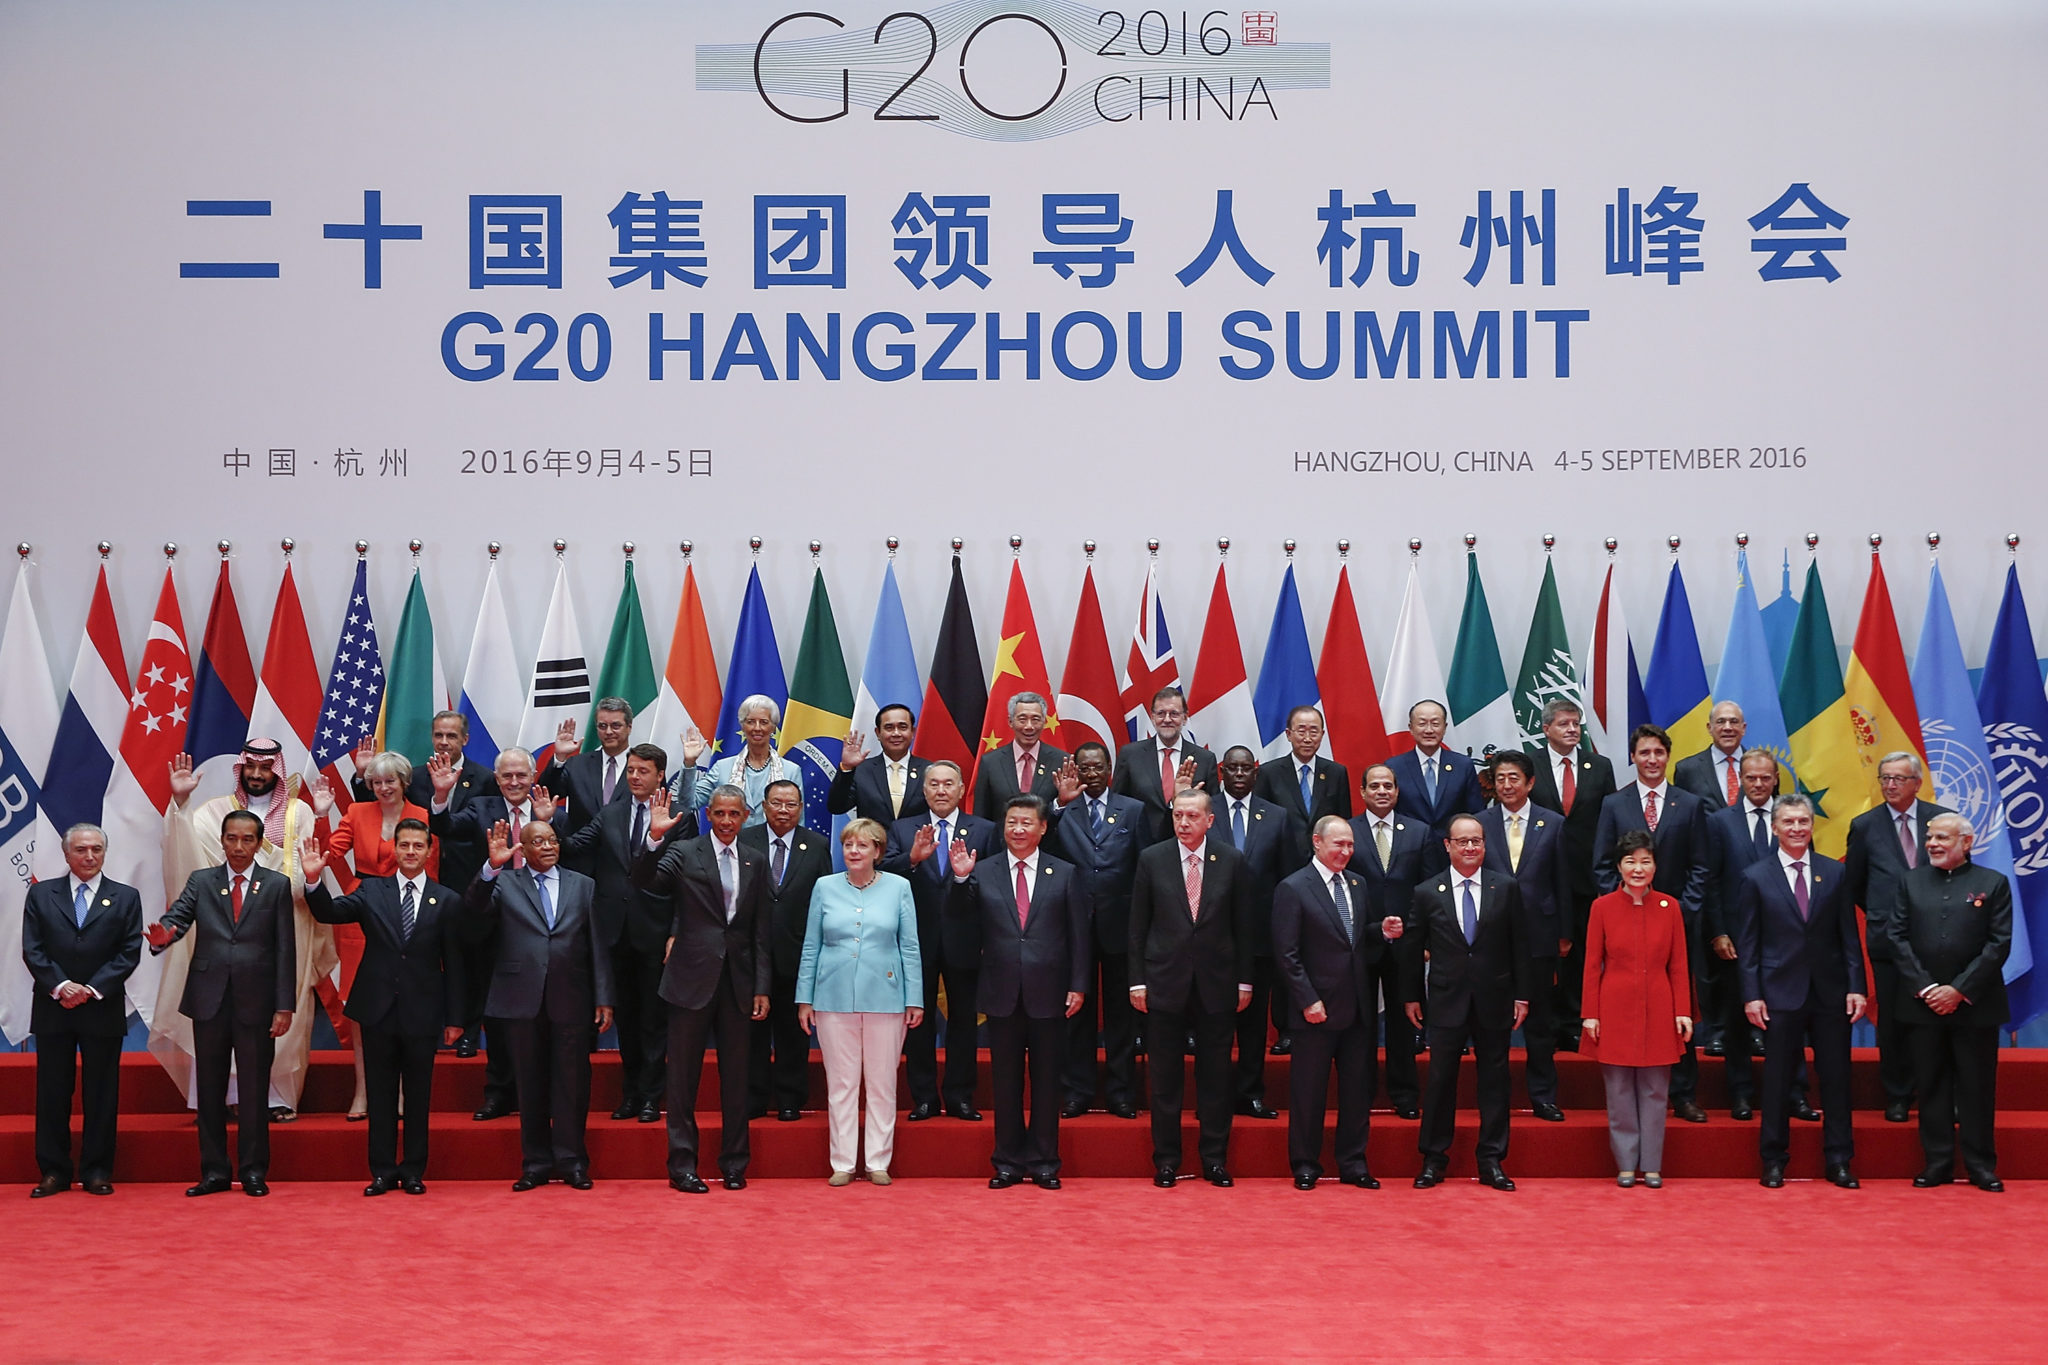 Is the G20 wilfully negligent in dealing with the global refugee crisis?